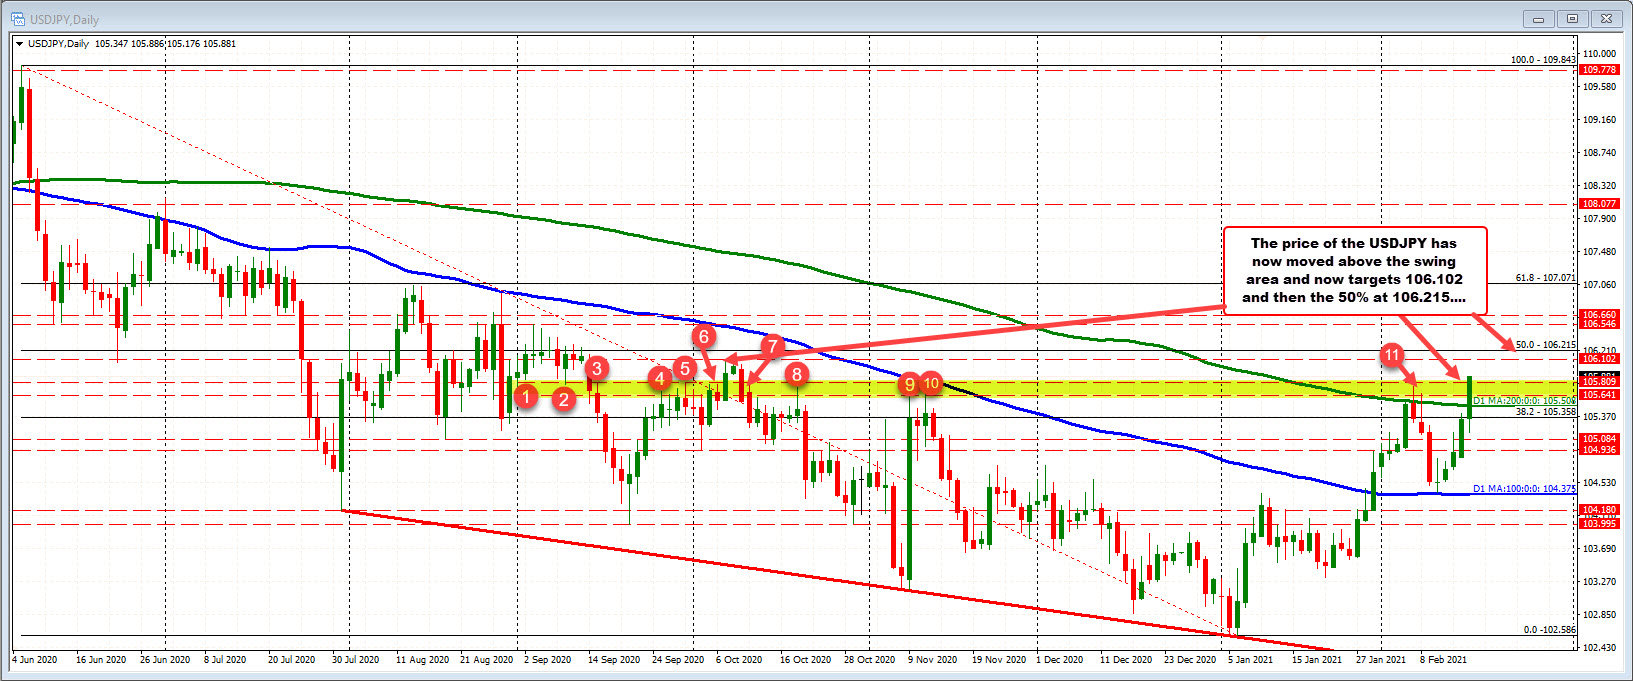 USDJPY on the daily